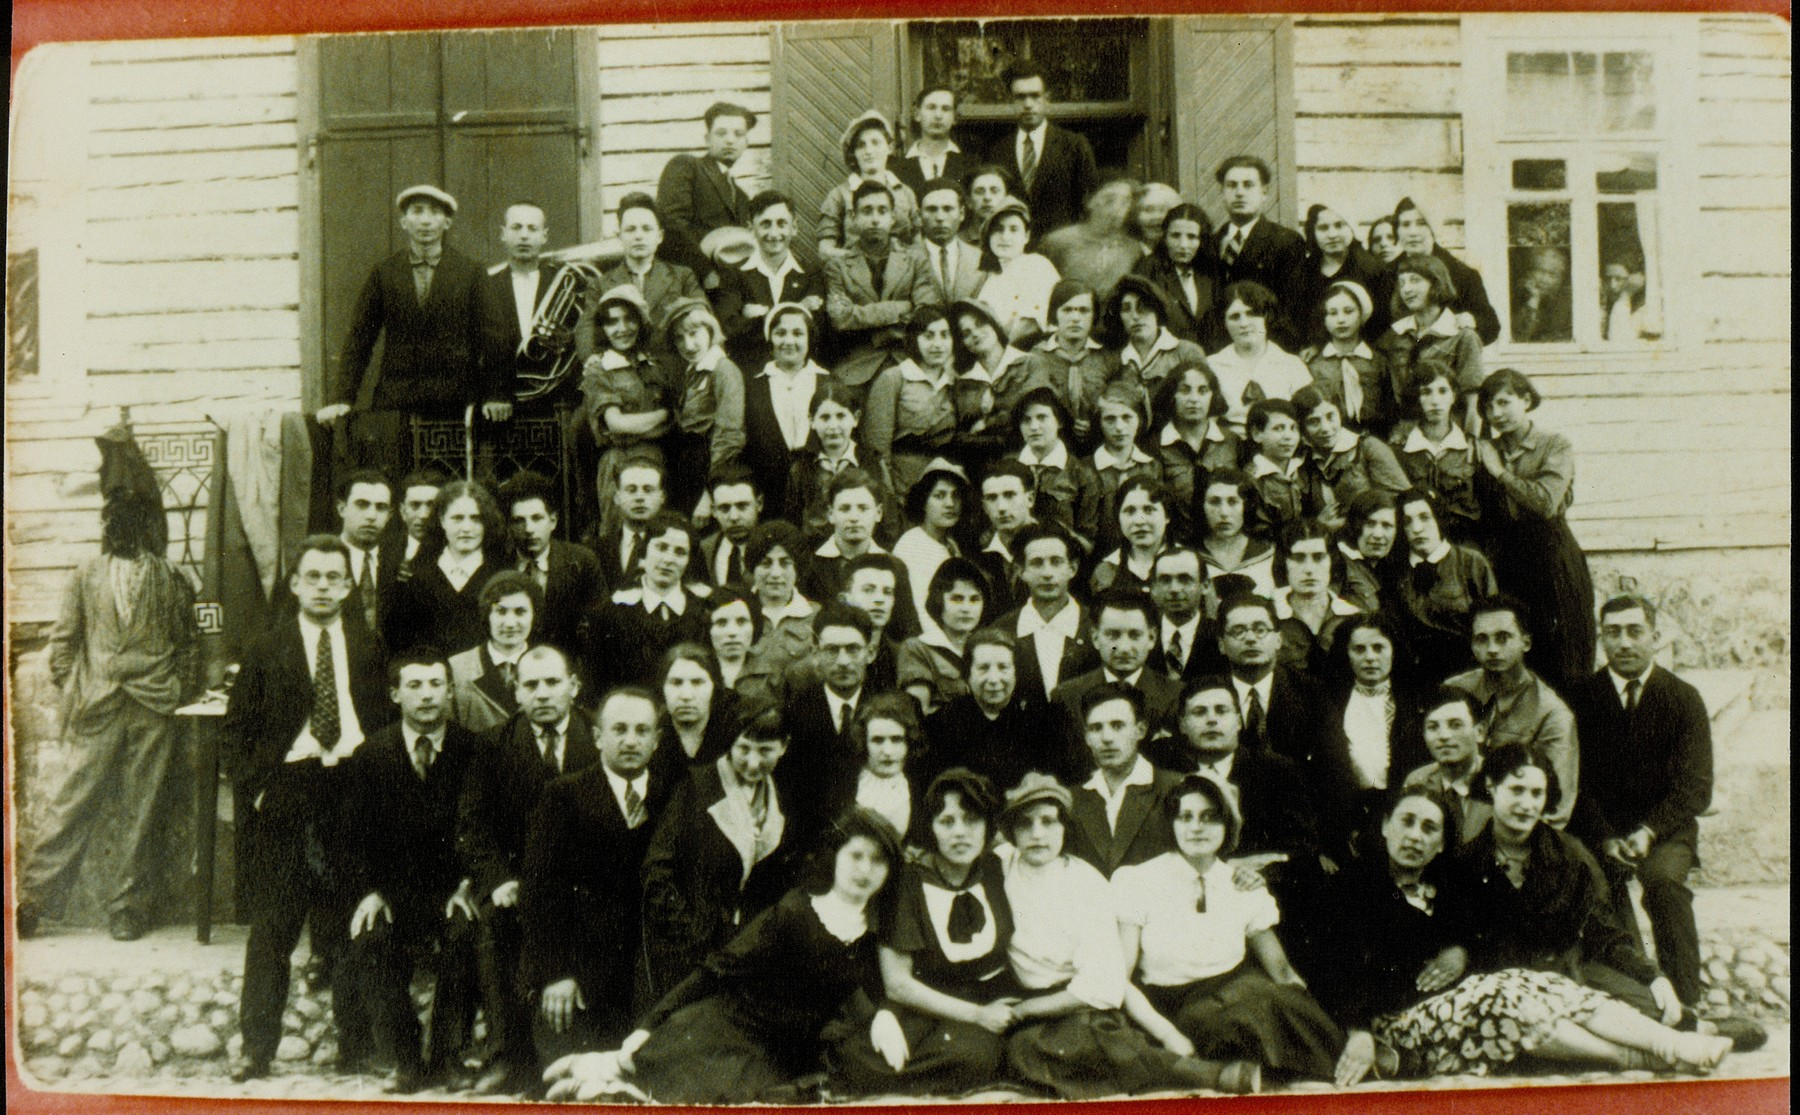 Members of the Hehalutz Zionist youth movement.  Flora Kagan is in the fourth row from the top, third person from the left.